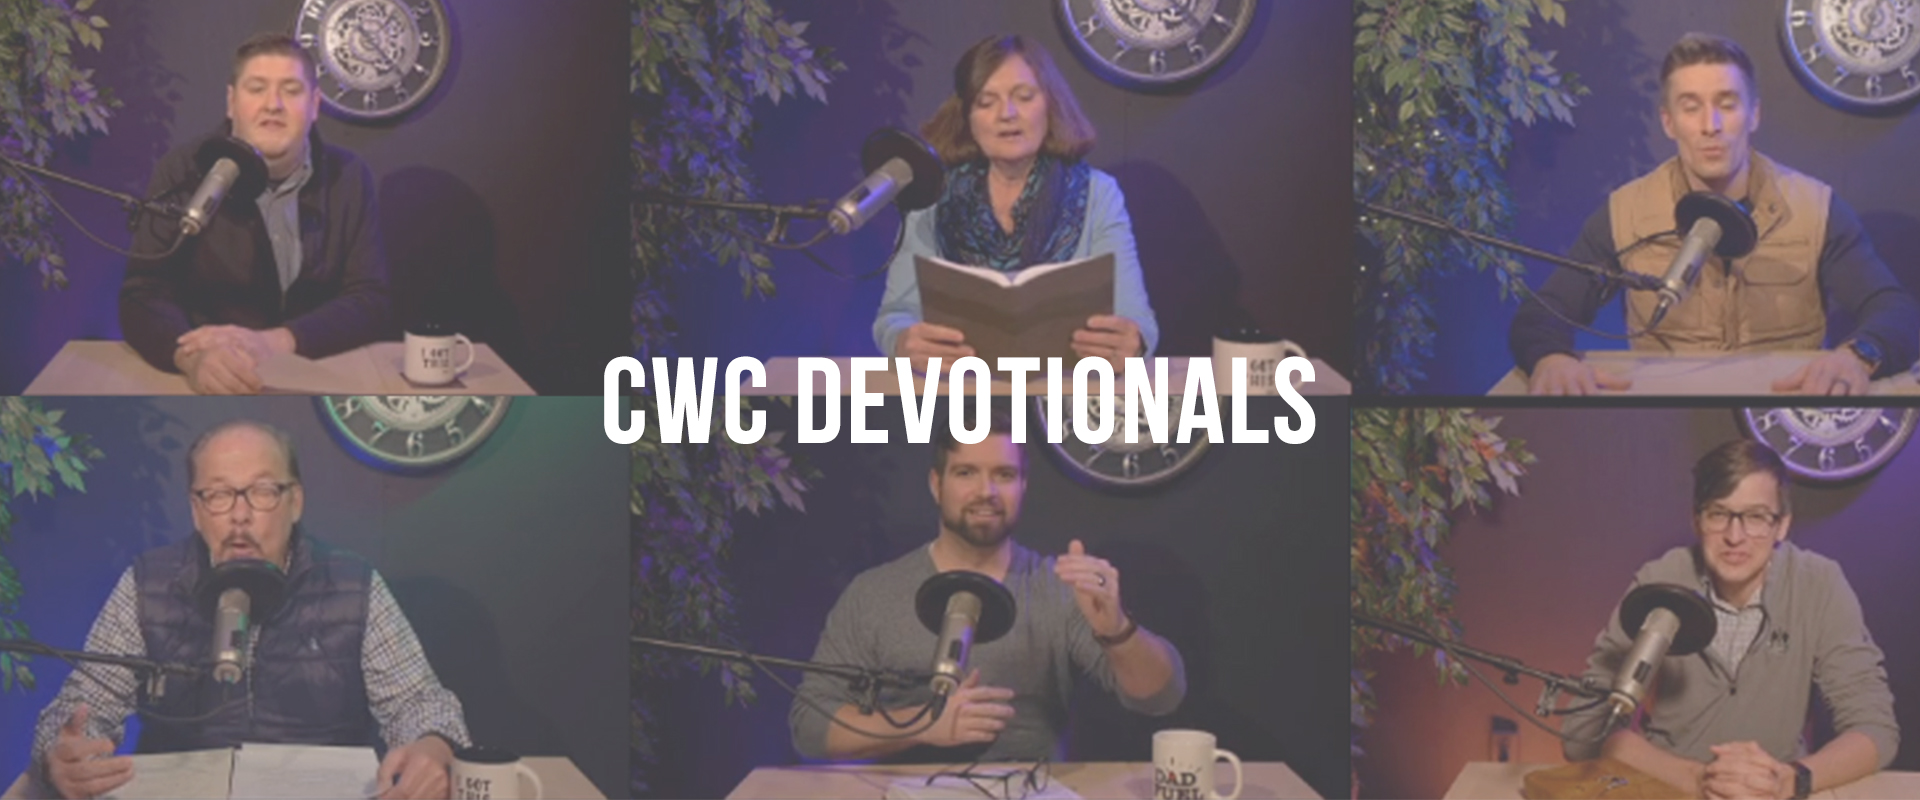 CWC Devotionals